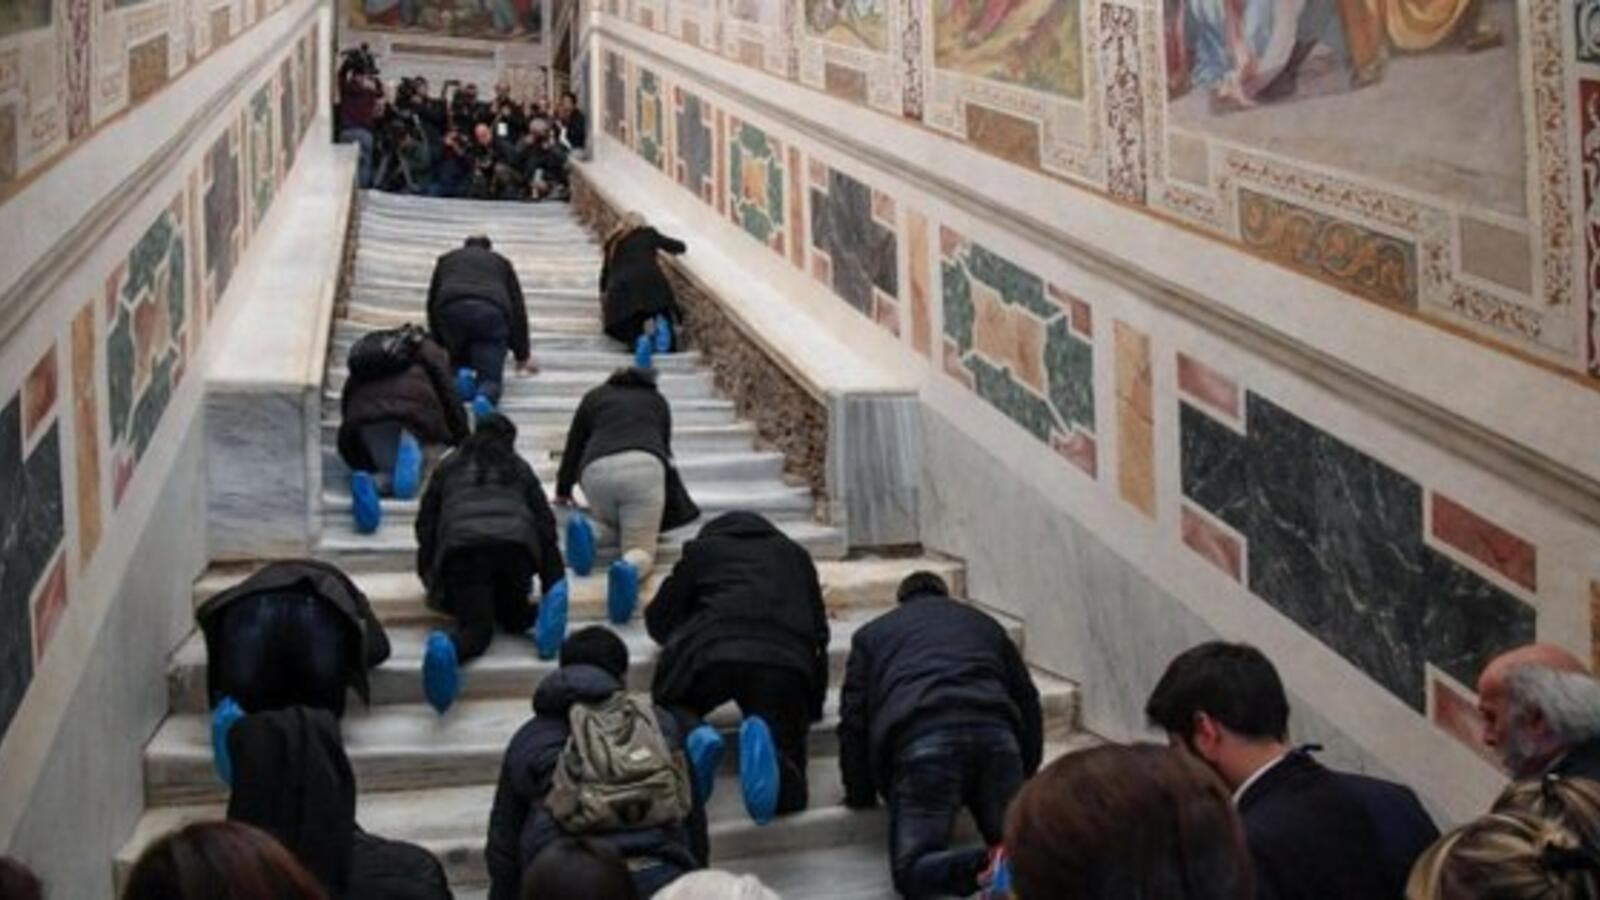 The Scala Sancta, or Holy Staircase (Twitter)